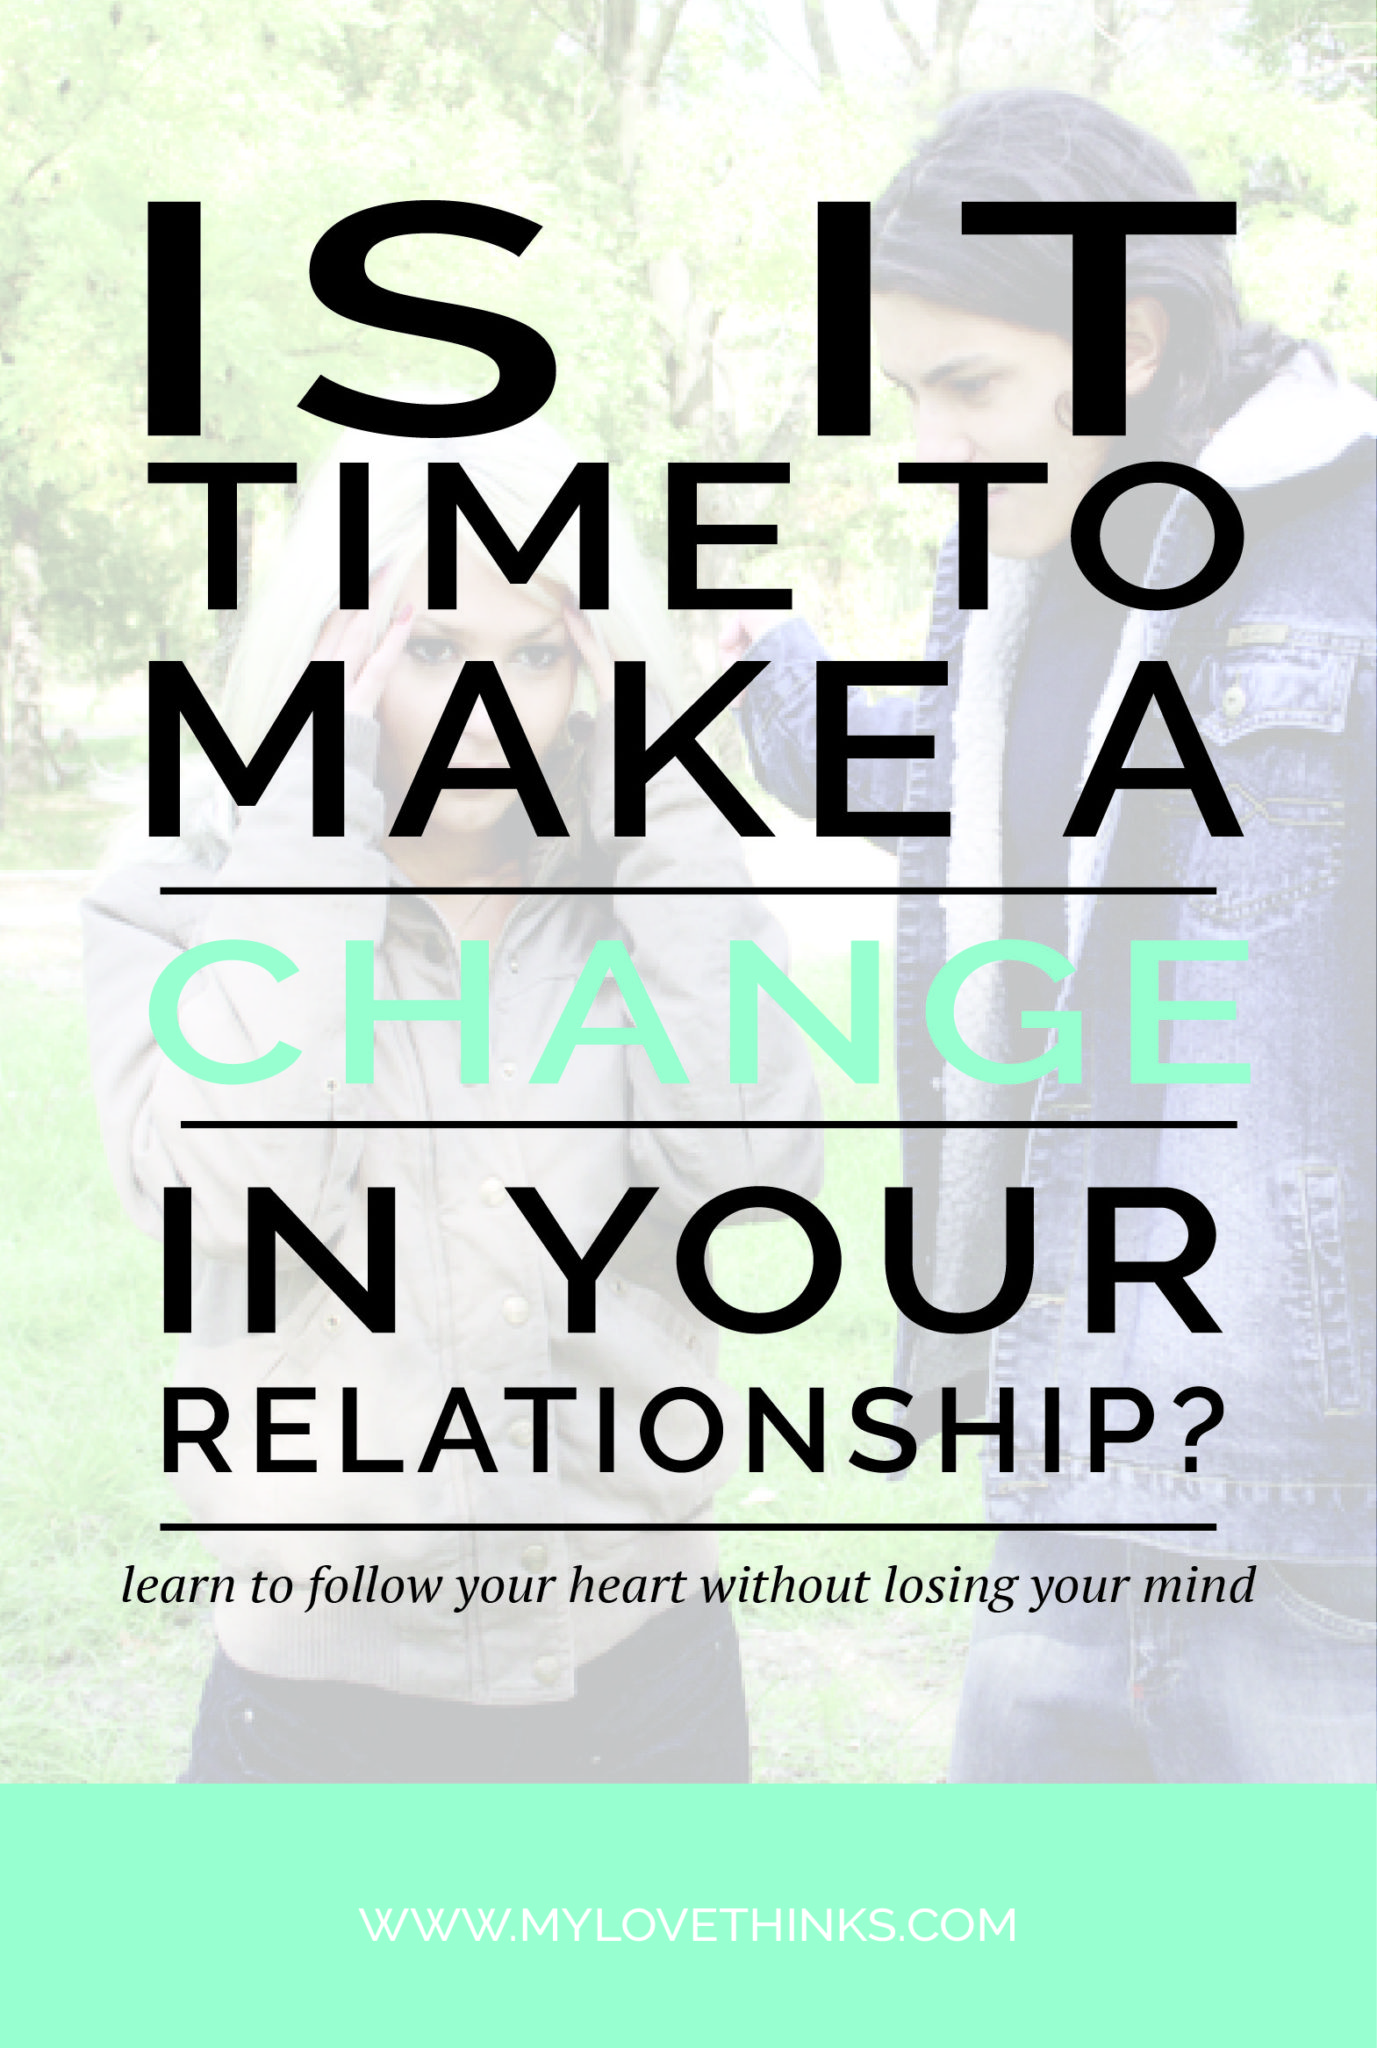 Is it time to make a change in your relationship?